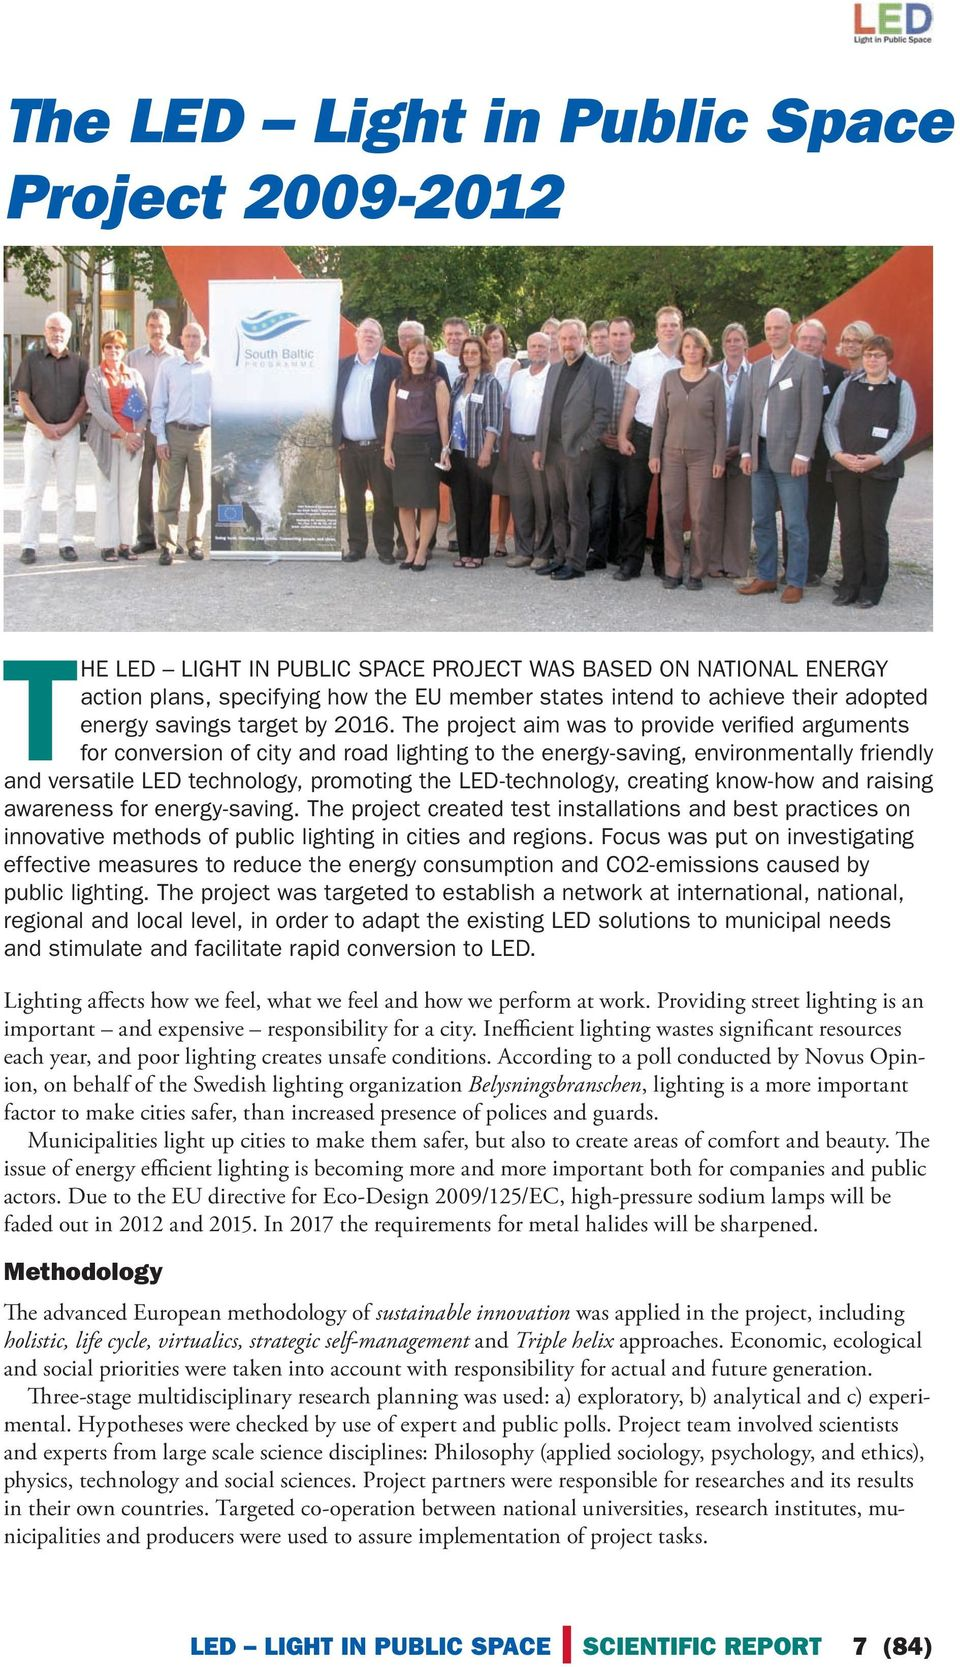 The project aim was to provide verified arguments for conversion of city and road lighting to the energy-saving, environmentally friendly and versatile LED technology, promoting the LED-technology,